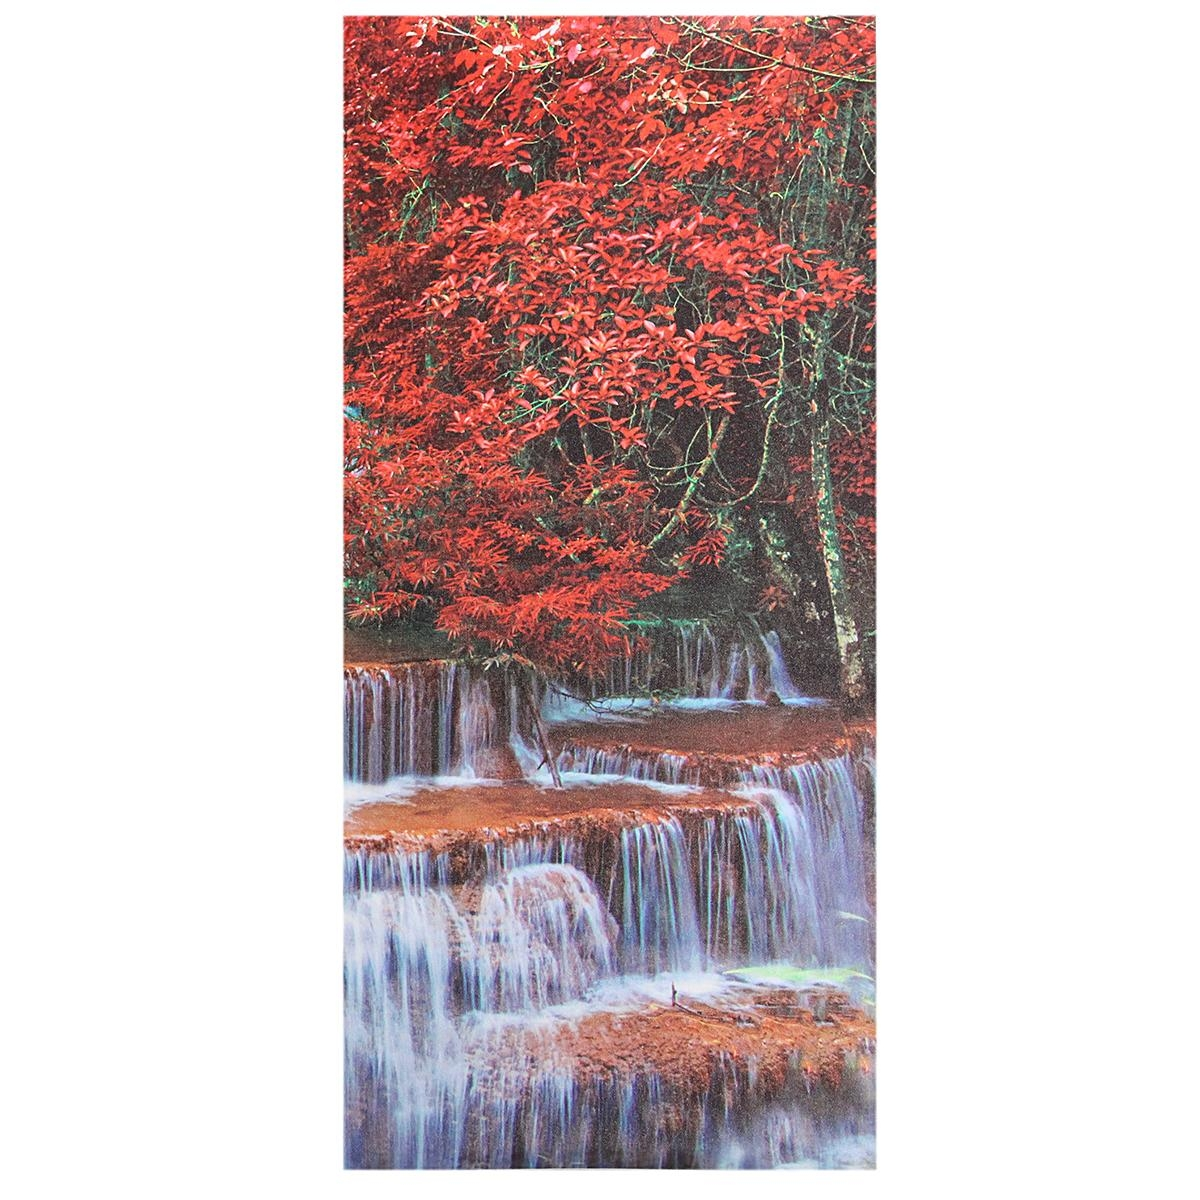 Triptych Frameless Canvas Prints Wall Art Picture Mangrove Forest Within Waterfall Wall Art (View 14 of 20)